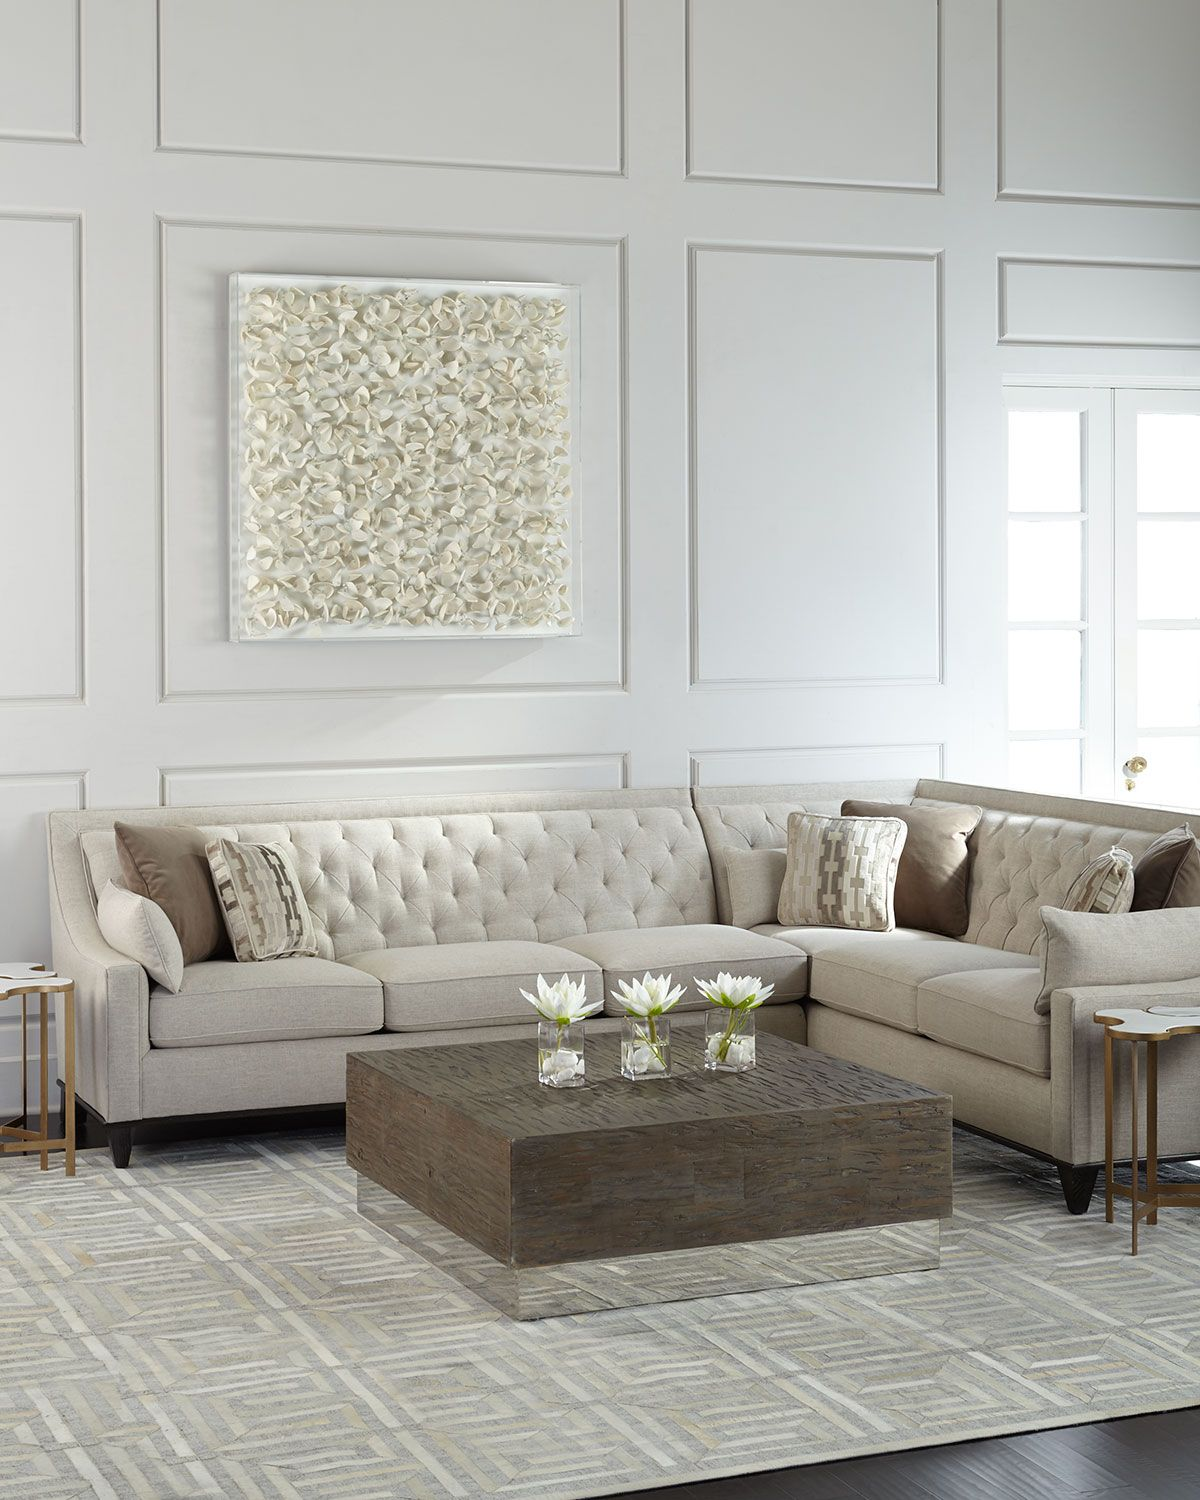 transitional style sectional sofas memory foam mattress for sofa bed uk linzie linen blurring